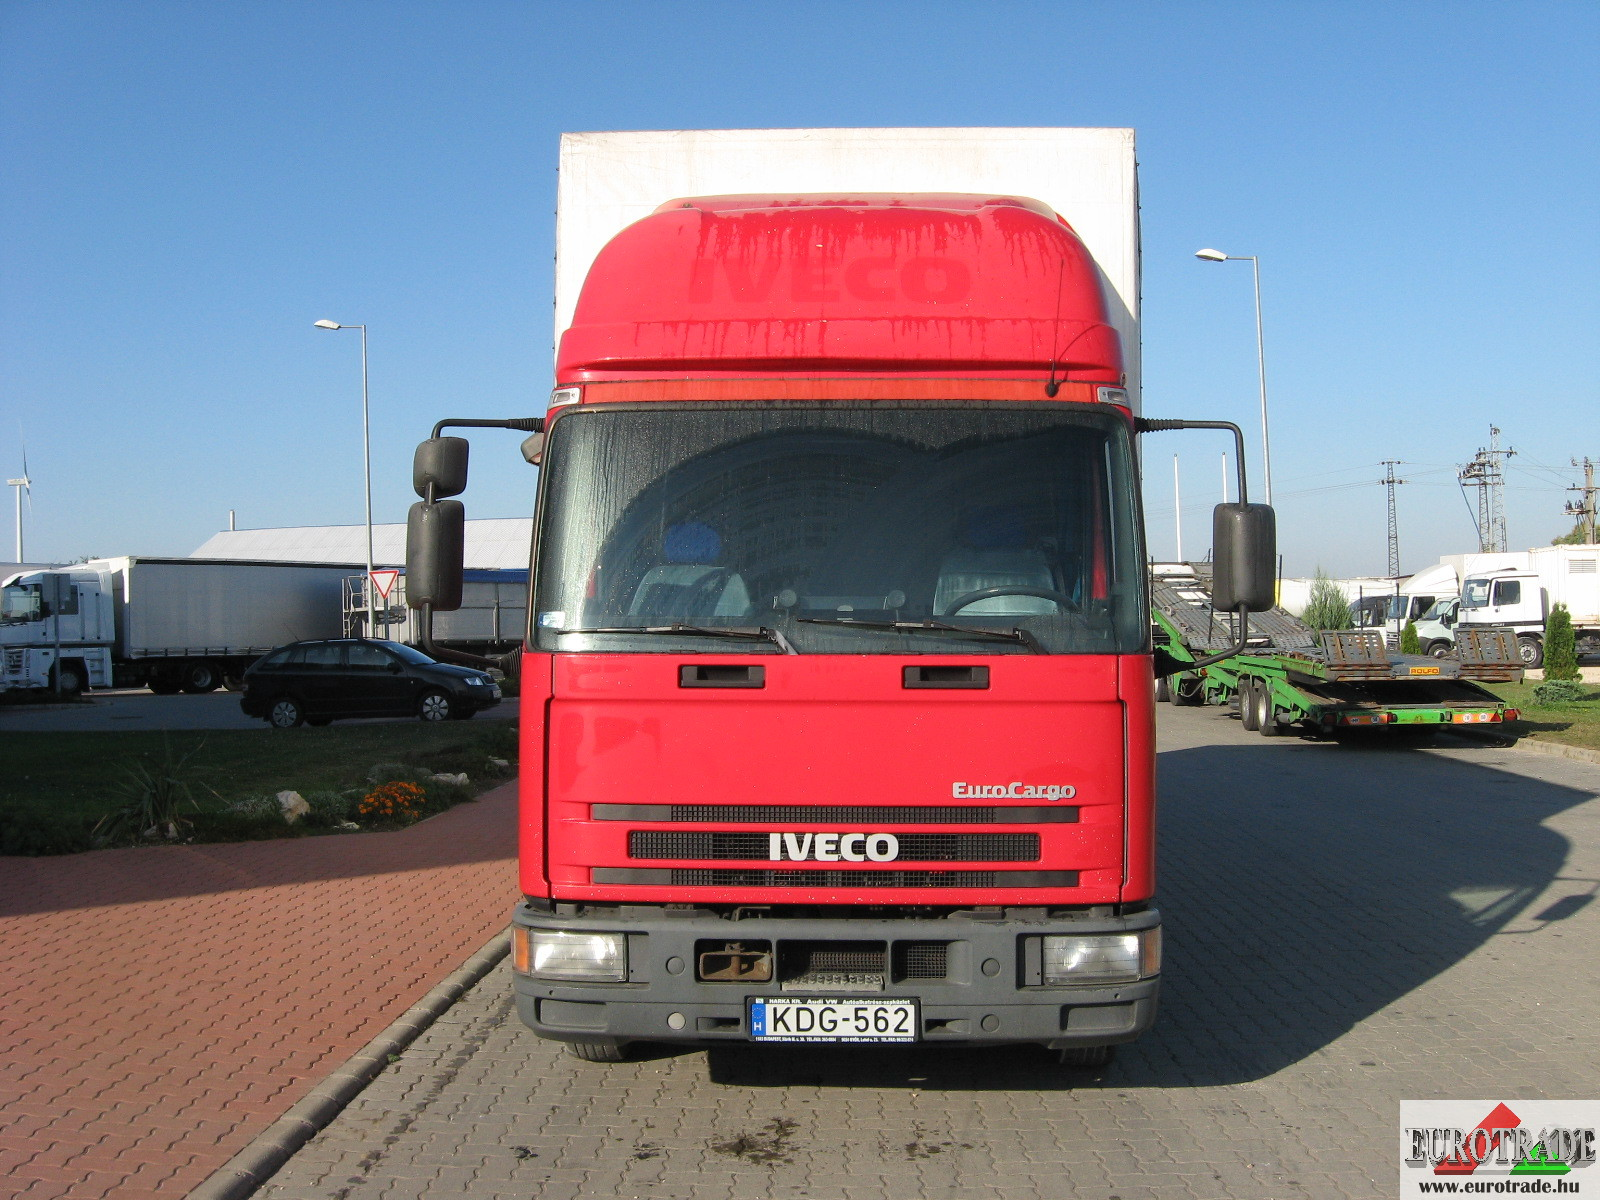 Iveco eurocargo 75e15 (439 comments) Views 31274 Rating 90